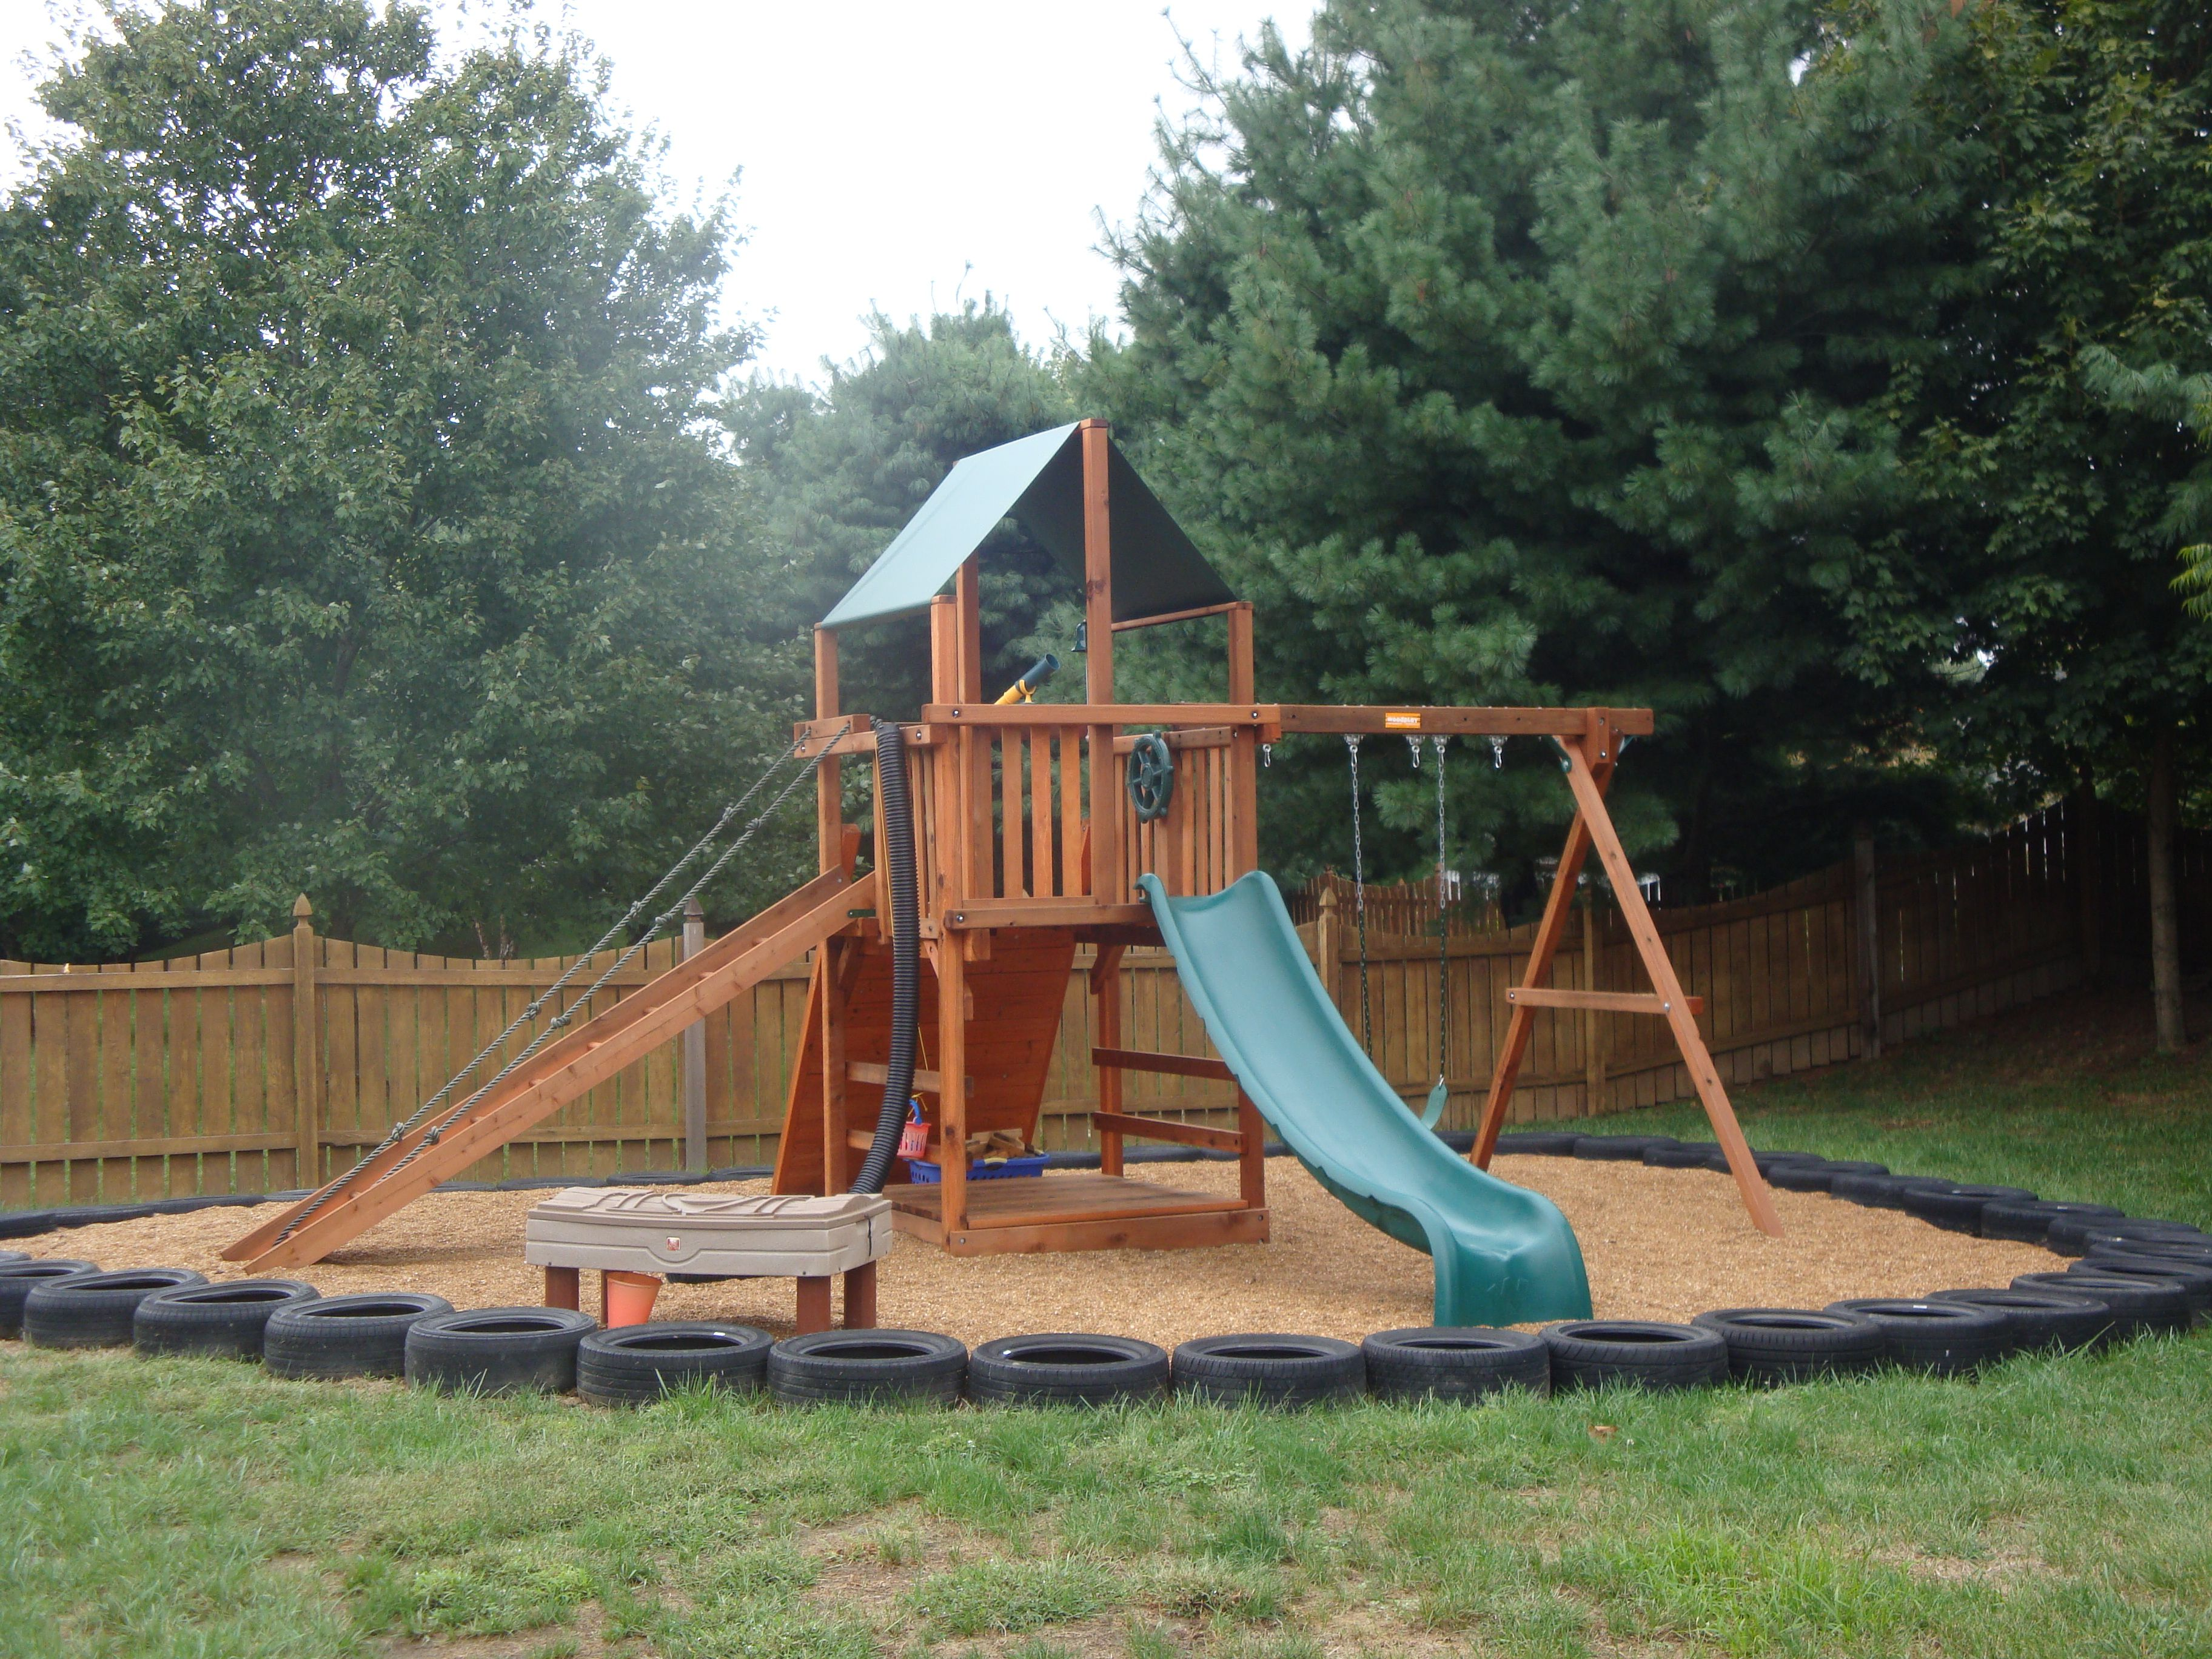 Recycled Tires For Border Fun For Preschoolers To Walk On Also Backyard Playset Outdoor Fun For Kids